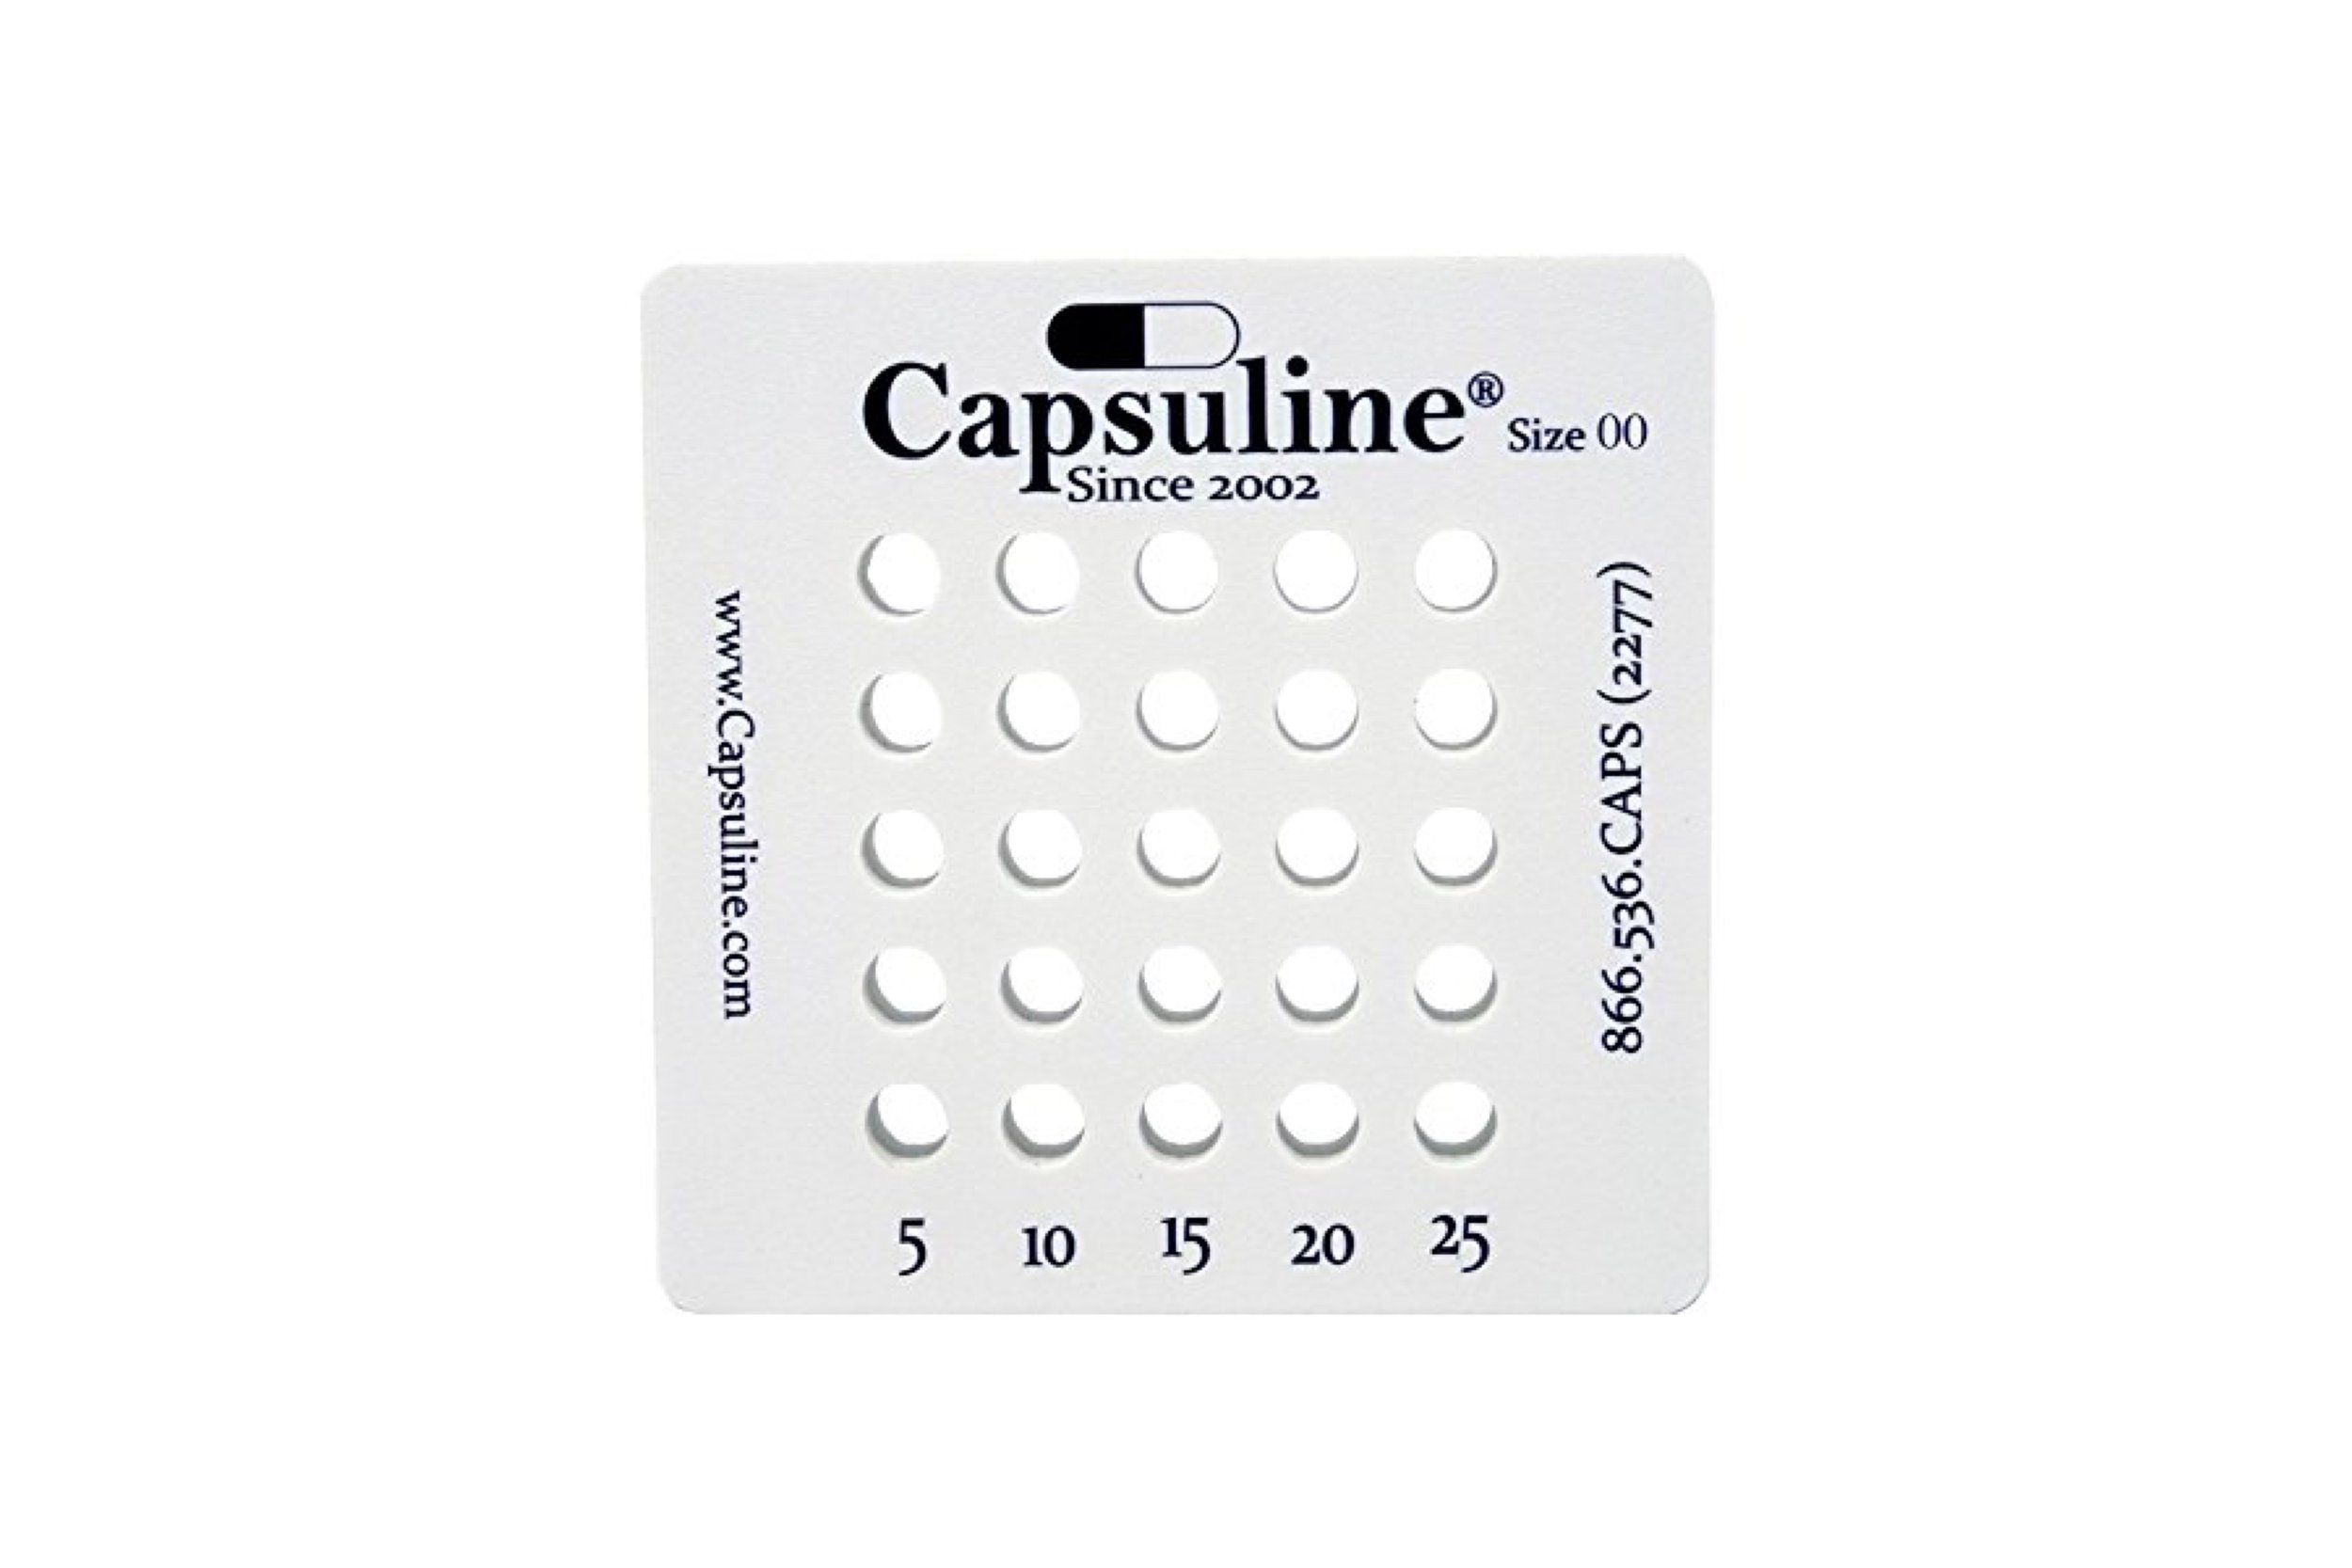 Holding Tray for size 00 capsules